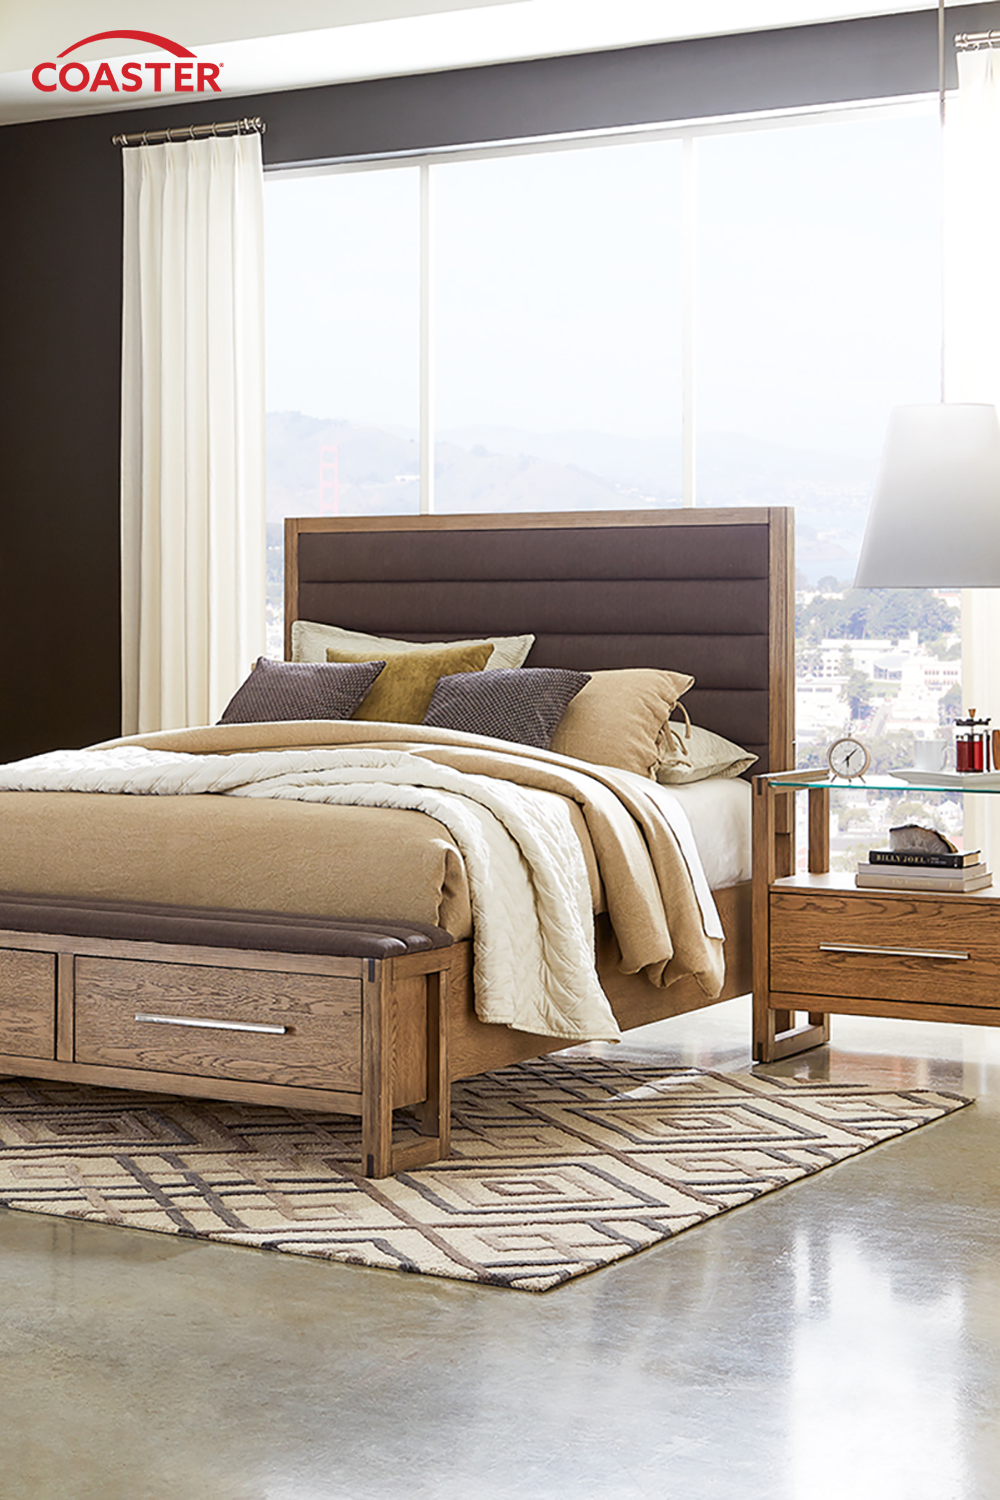 Elegant contemporary bedroom sets, like this one from